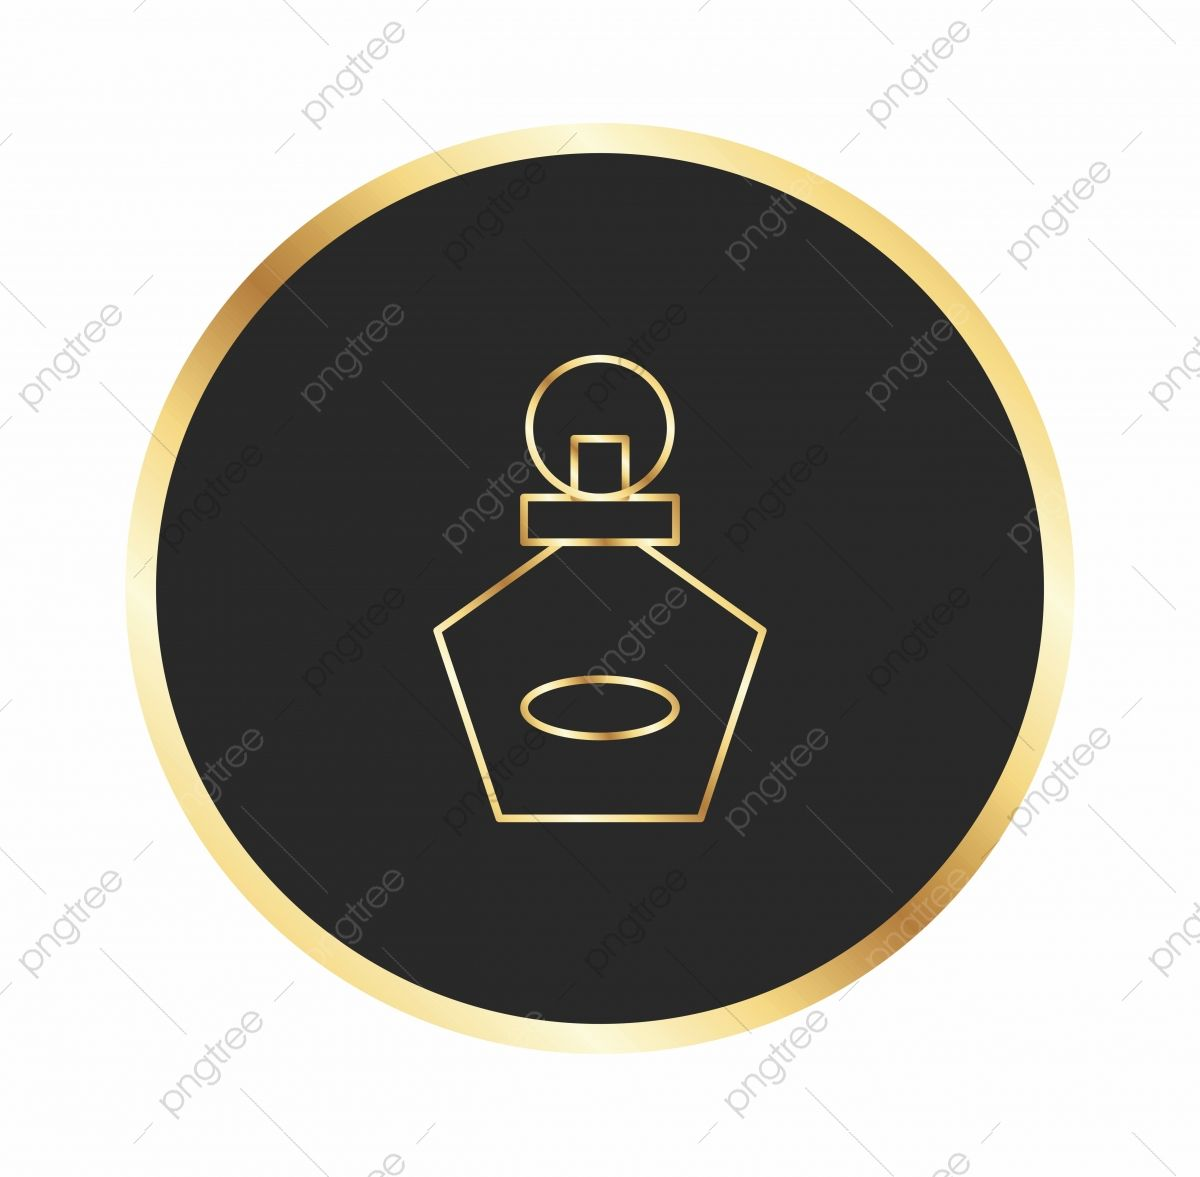 Perfume Bottles Icon For Your Project Perfume Clipart Project Icons Perfume Icons Png And Vector With Transparent Background For Free Download Mickey Mouse Drawings Mouse Drawing Perfume Bottles